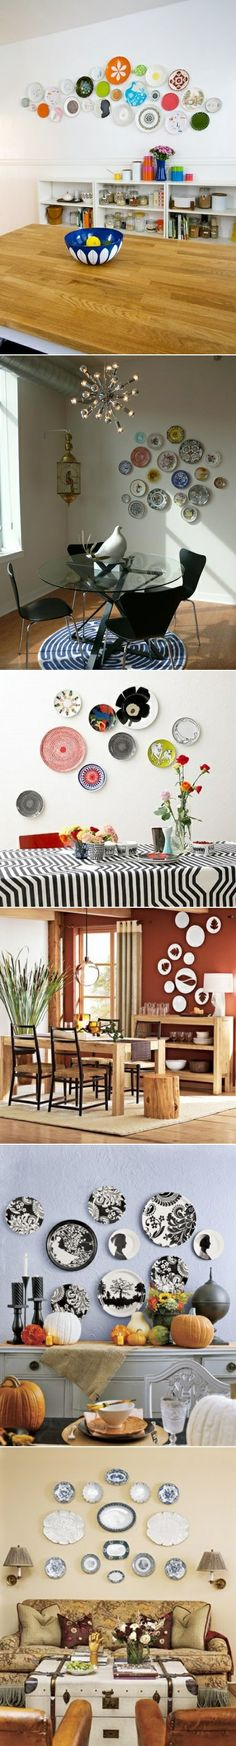 DIY Plates Wall Collage. Lovely. Perhaps would be ideal between my kitchen cupboards and window.